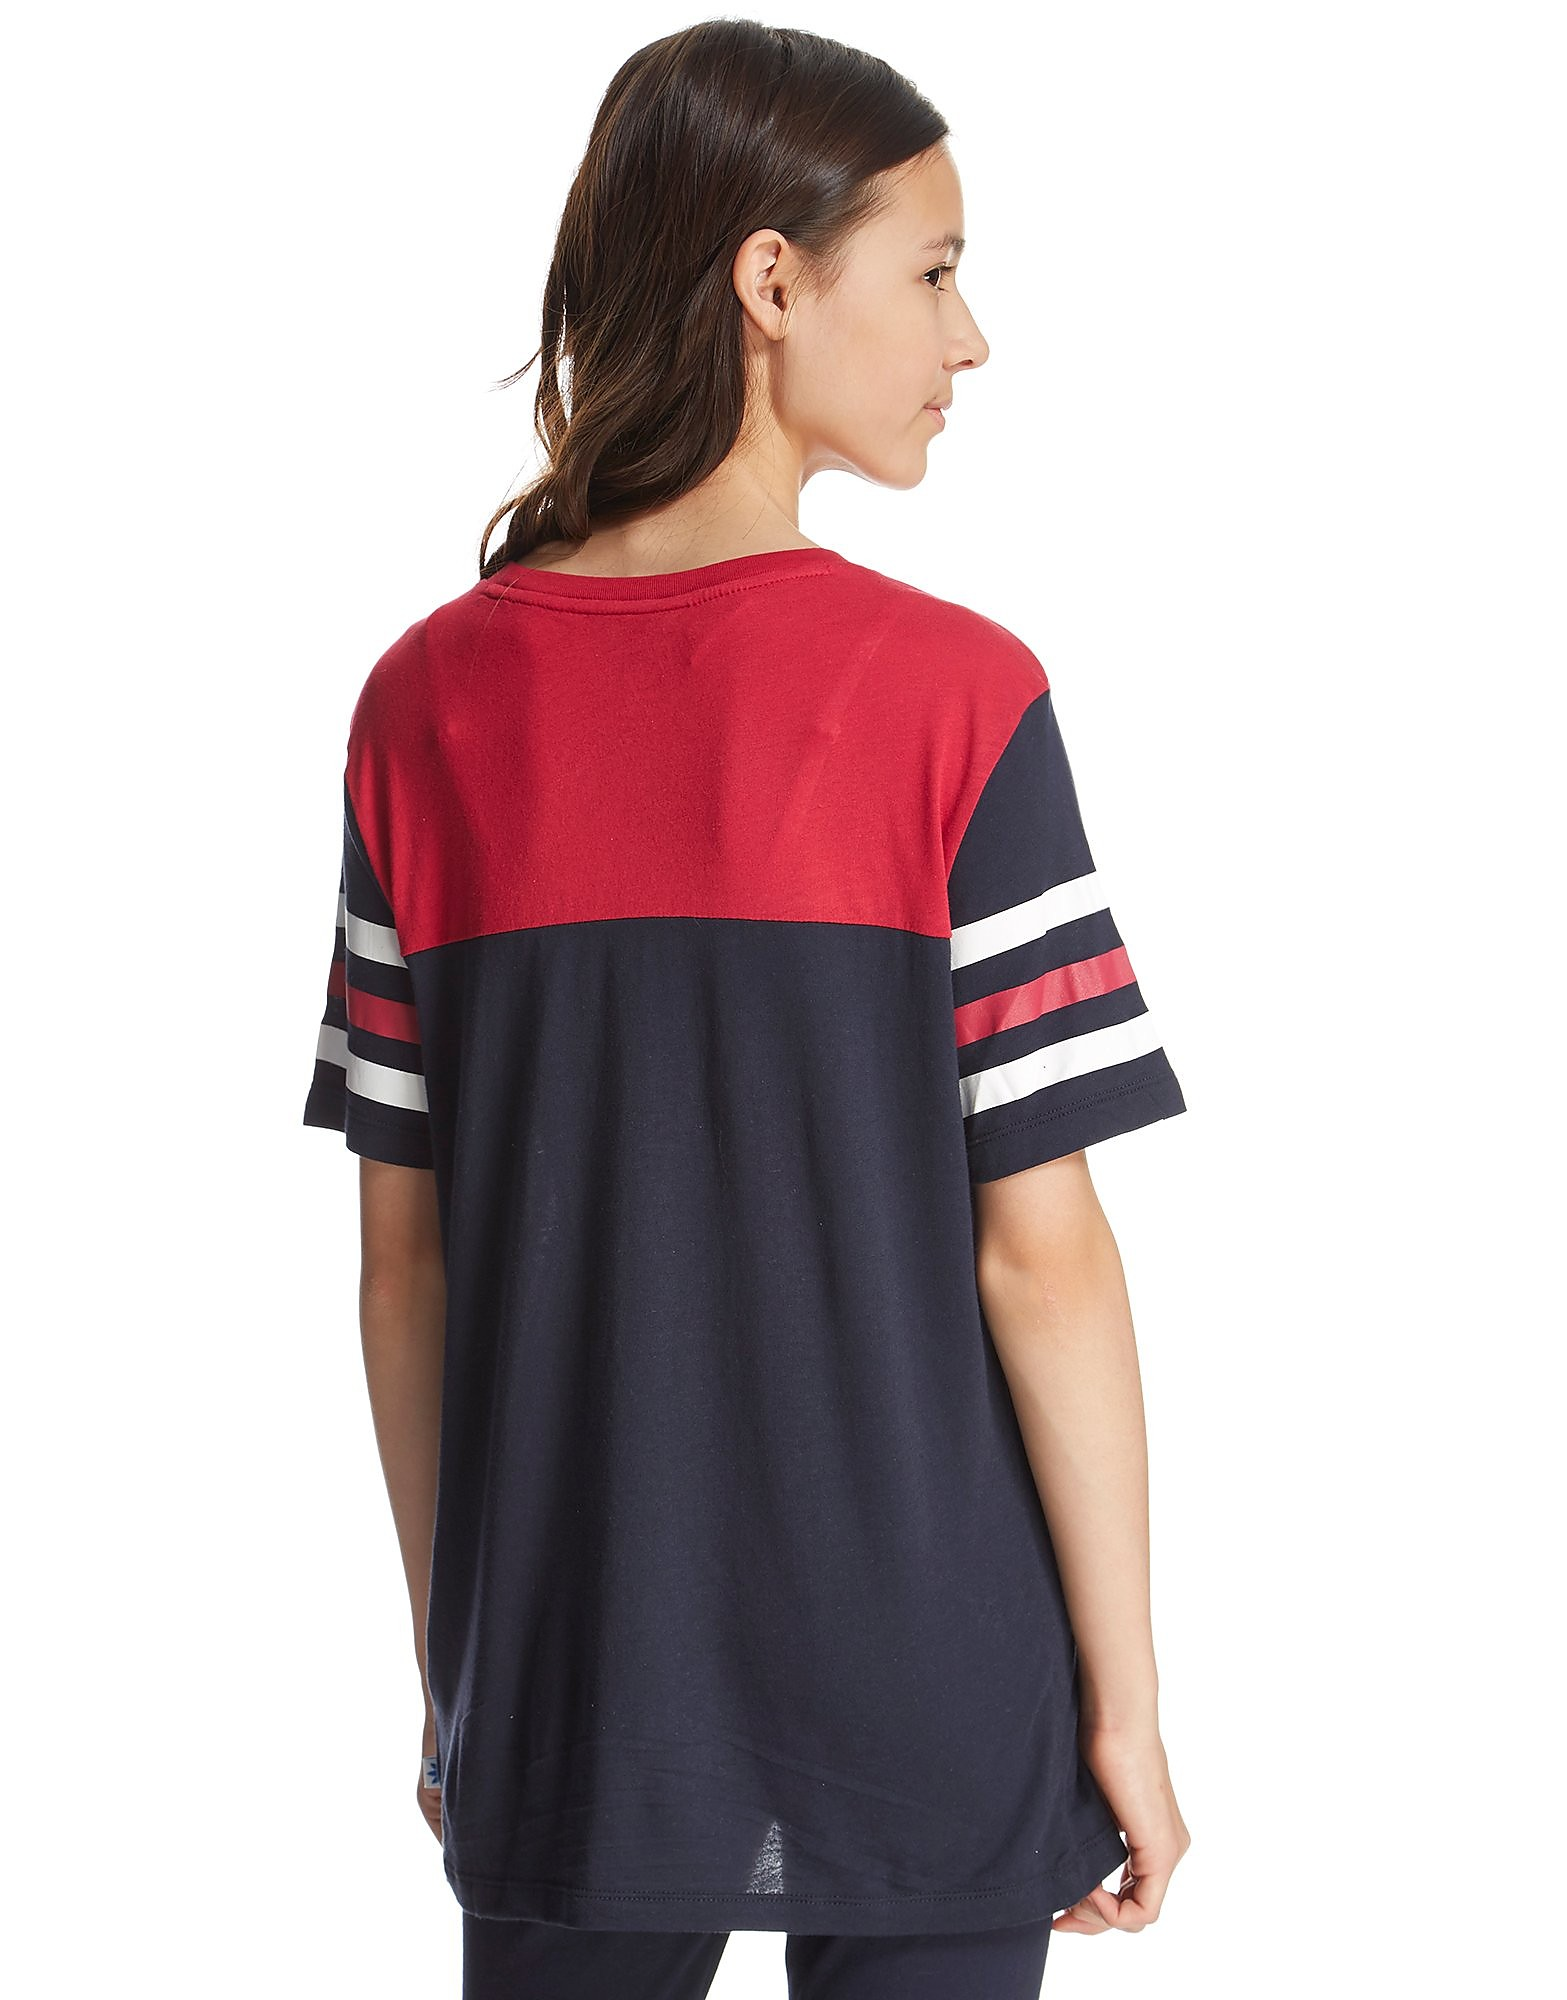 adidas Originals Girls' Colour Block T-Shirt Junior